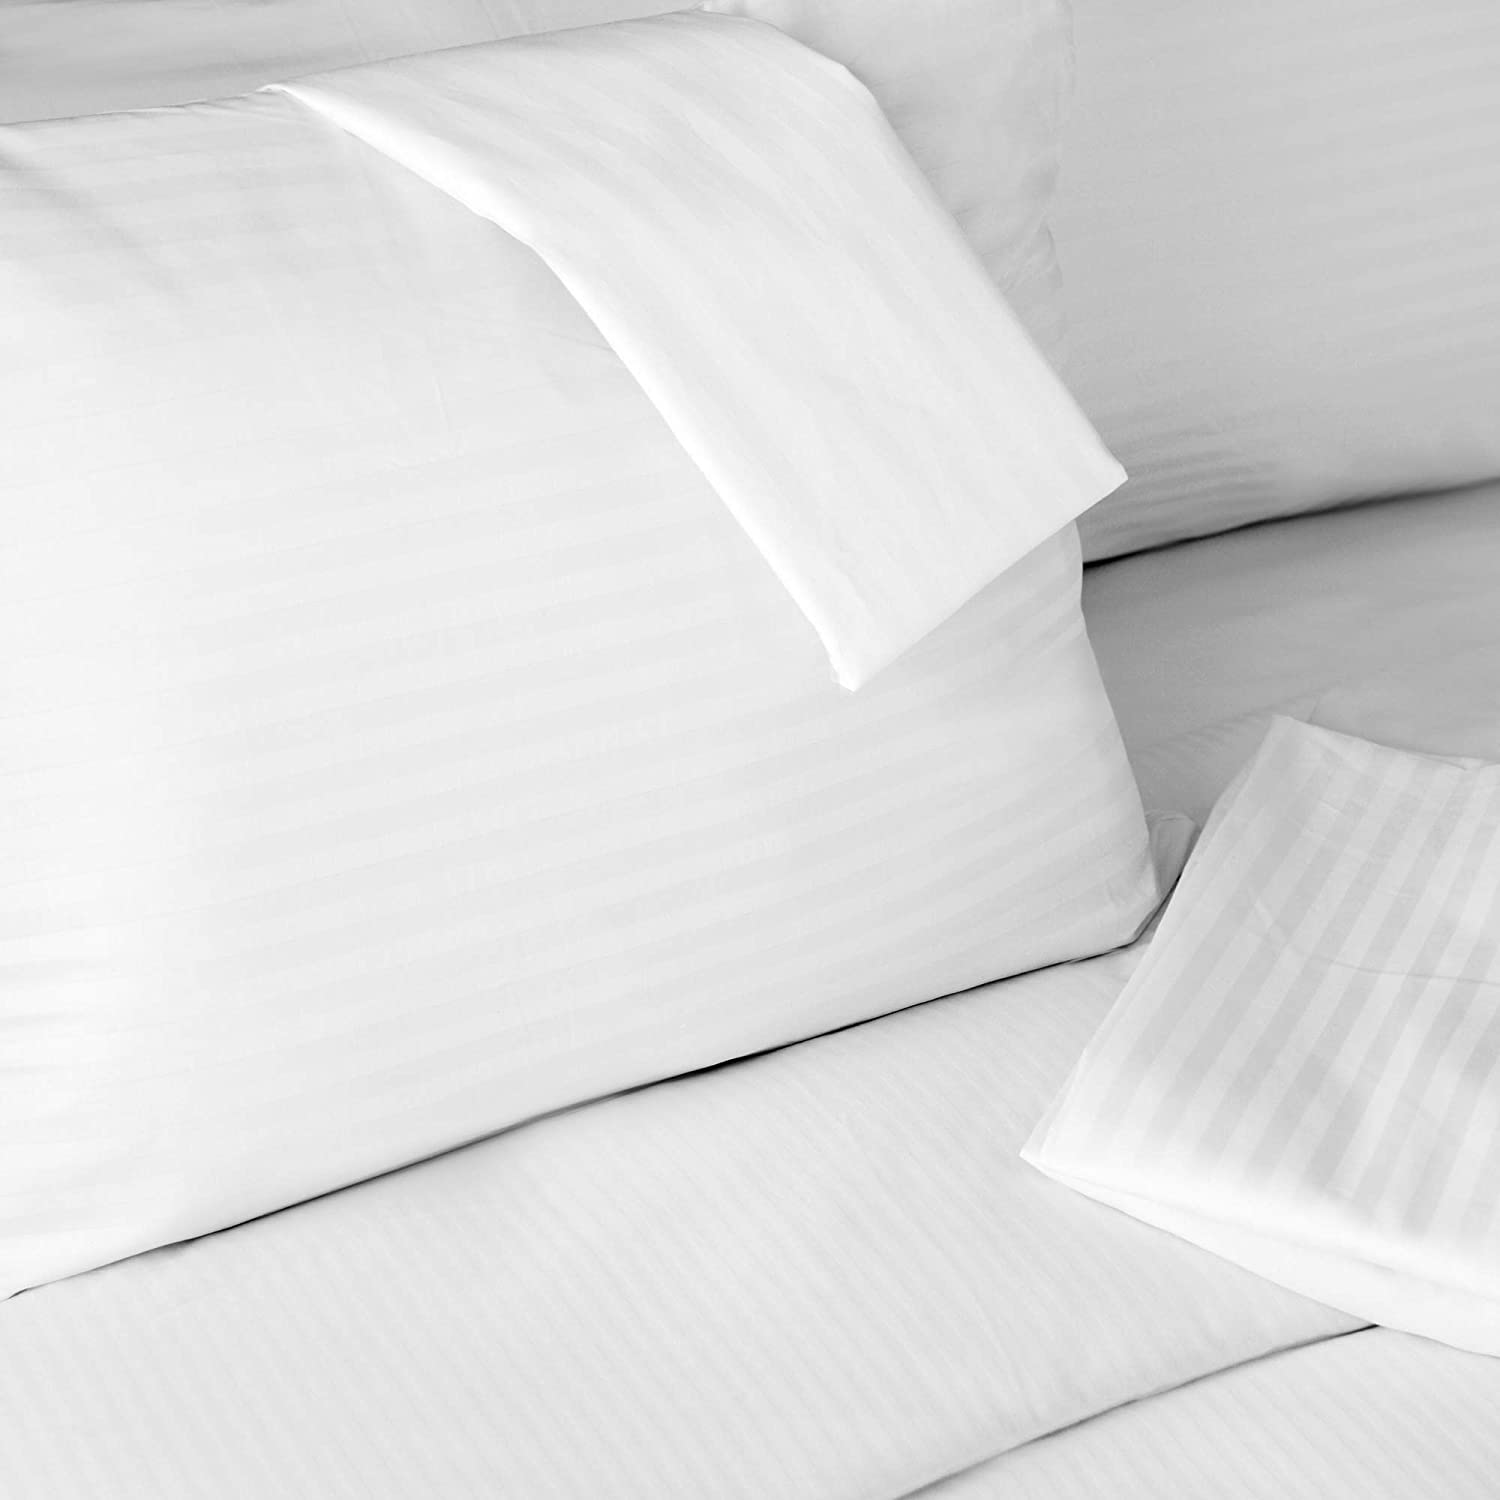 FeelAtHome 100/% Cotton Waterproof Zip Pillow Protector Covers - Anti Bed Bug /& Dustmite Pillowcase Cover Pack of 4, Queen Hypoallergenic Zippered Pillow Encasement Pillow Case